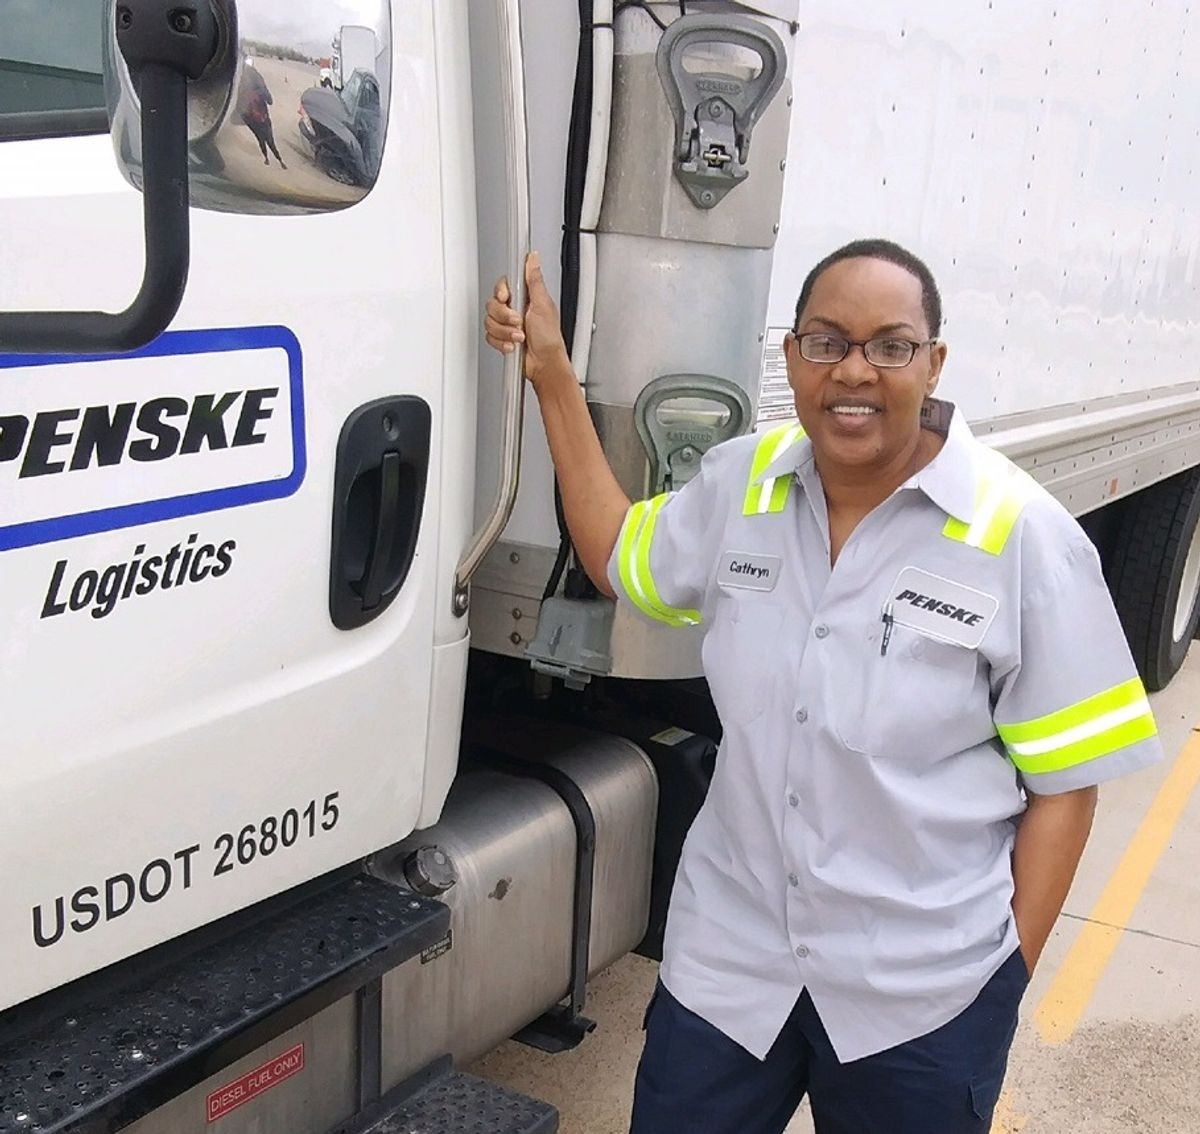 Penske Professional Truck Driver Charts Path to Rewarding Career